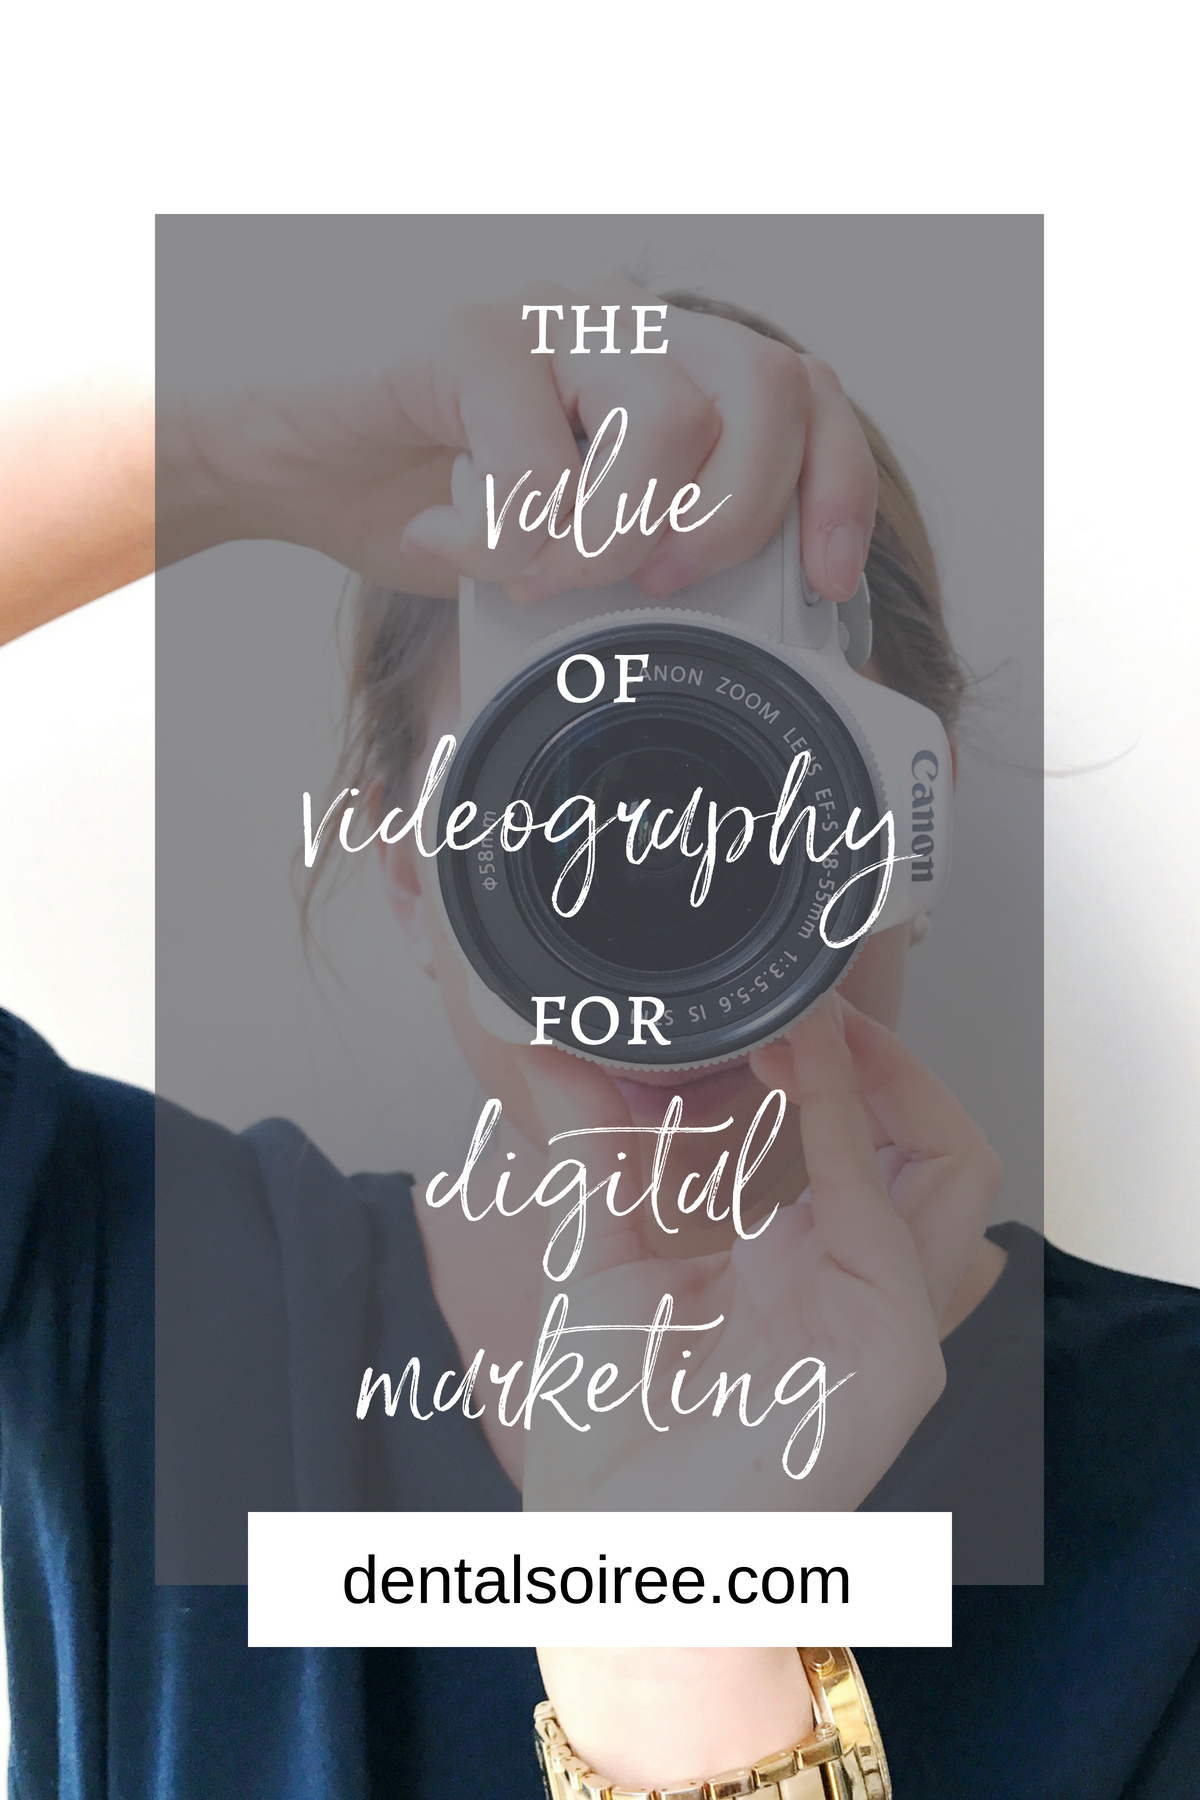 The Value of Videography for Digital Marketing